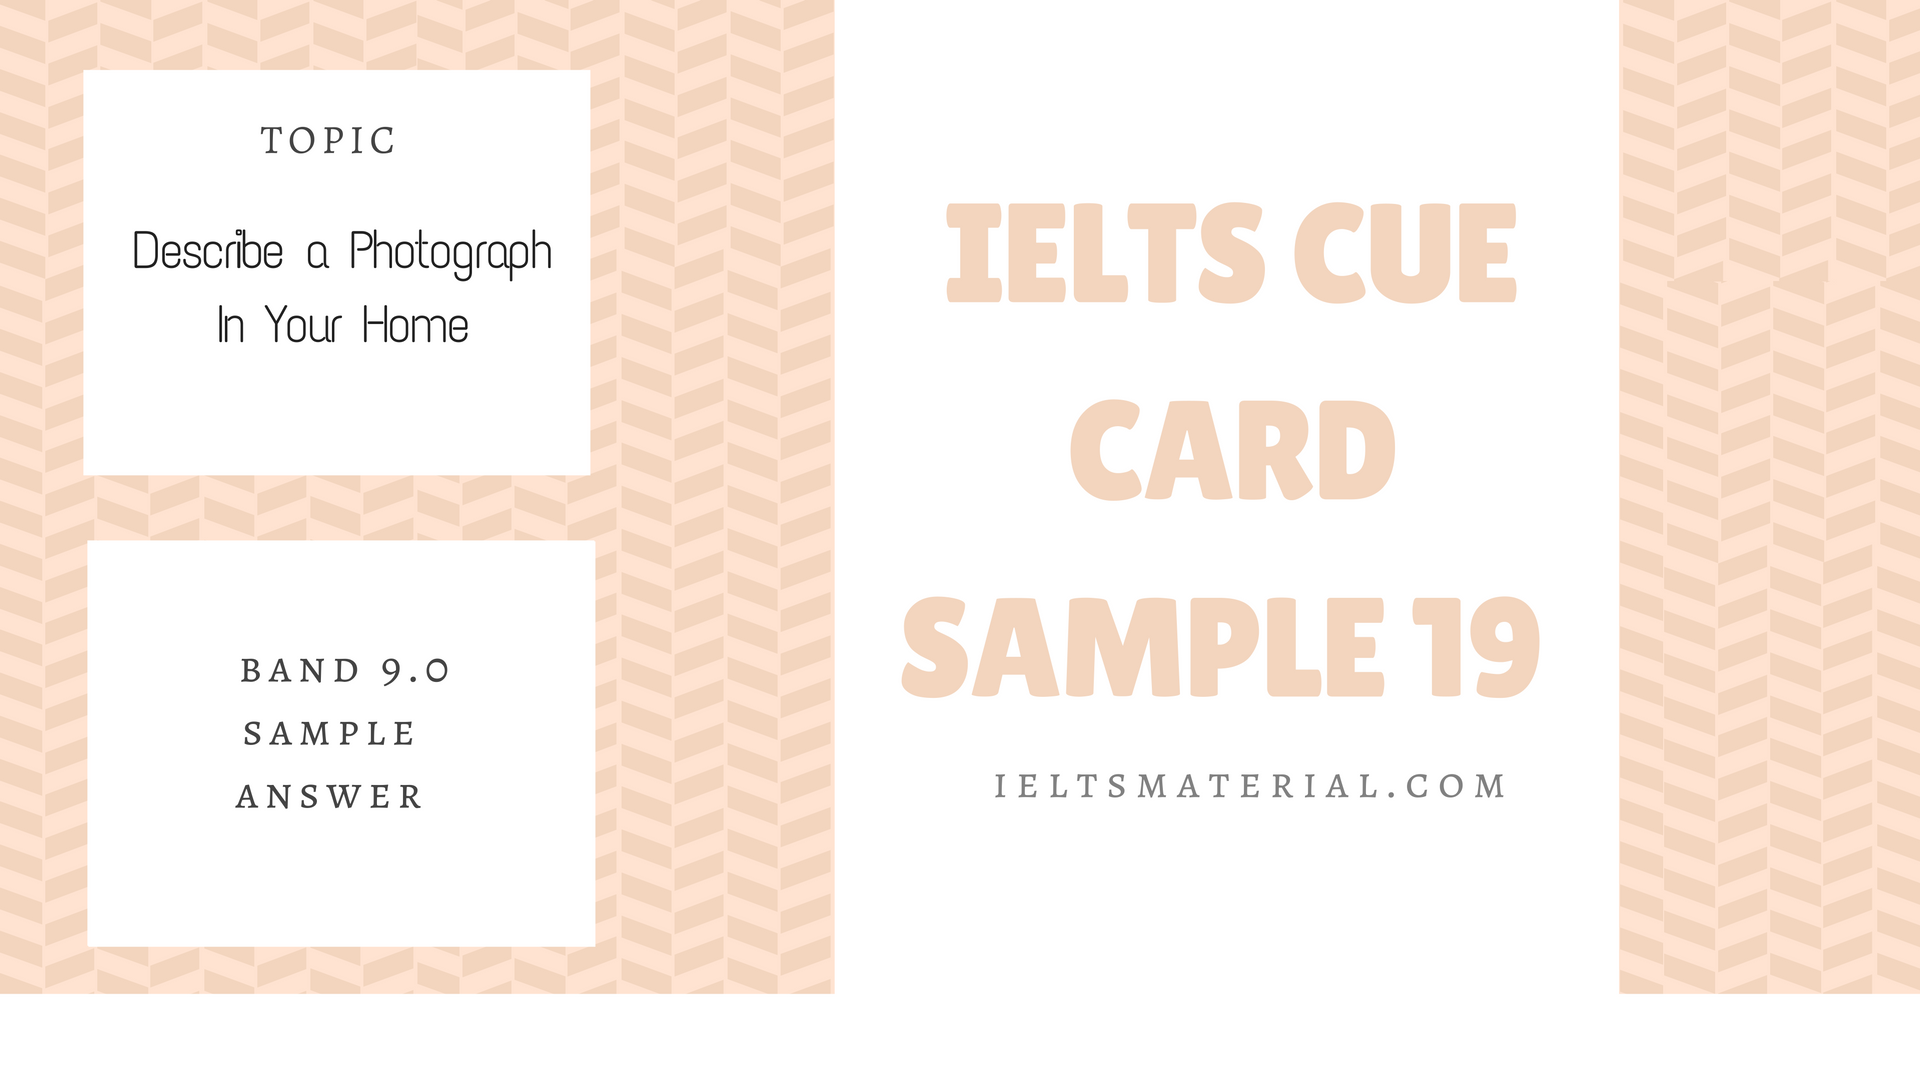 ielts cue card sample topic something you do that keeps you fit ielts cue card sample 19 topic a photograph in your home